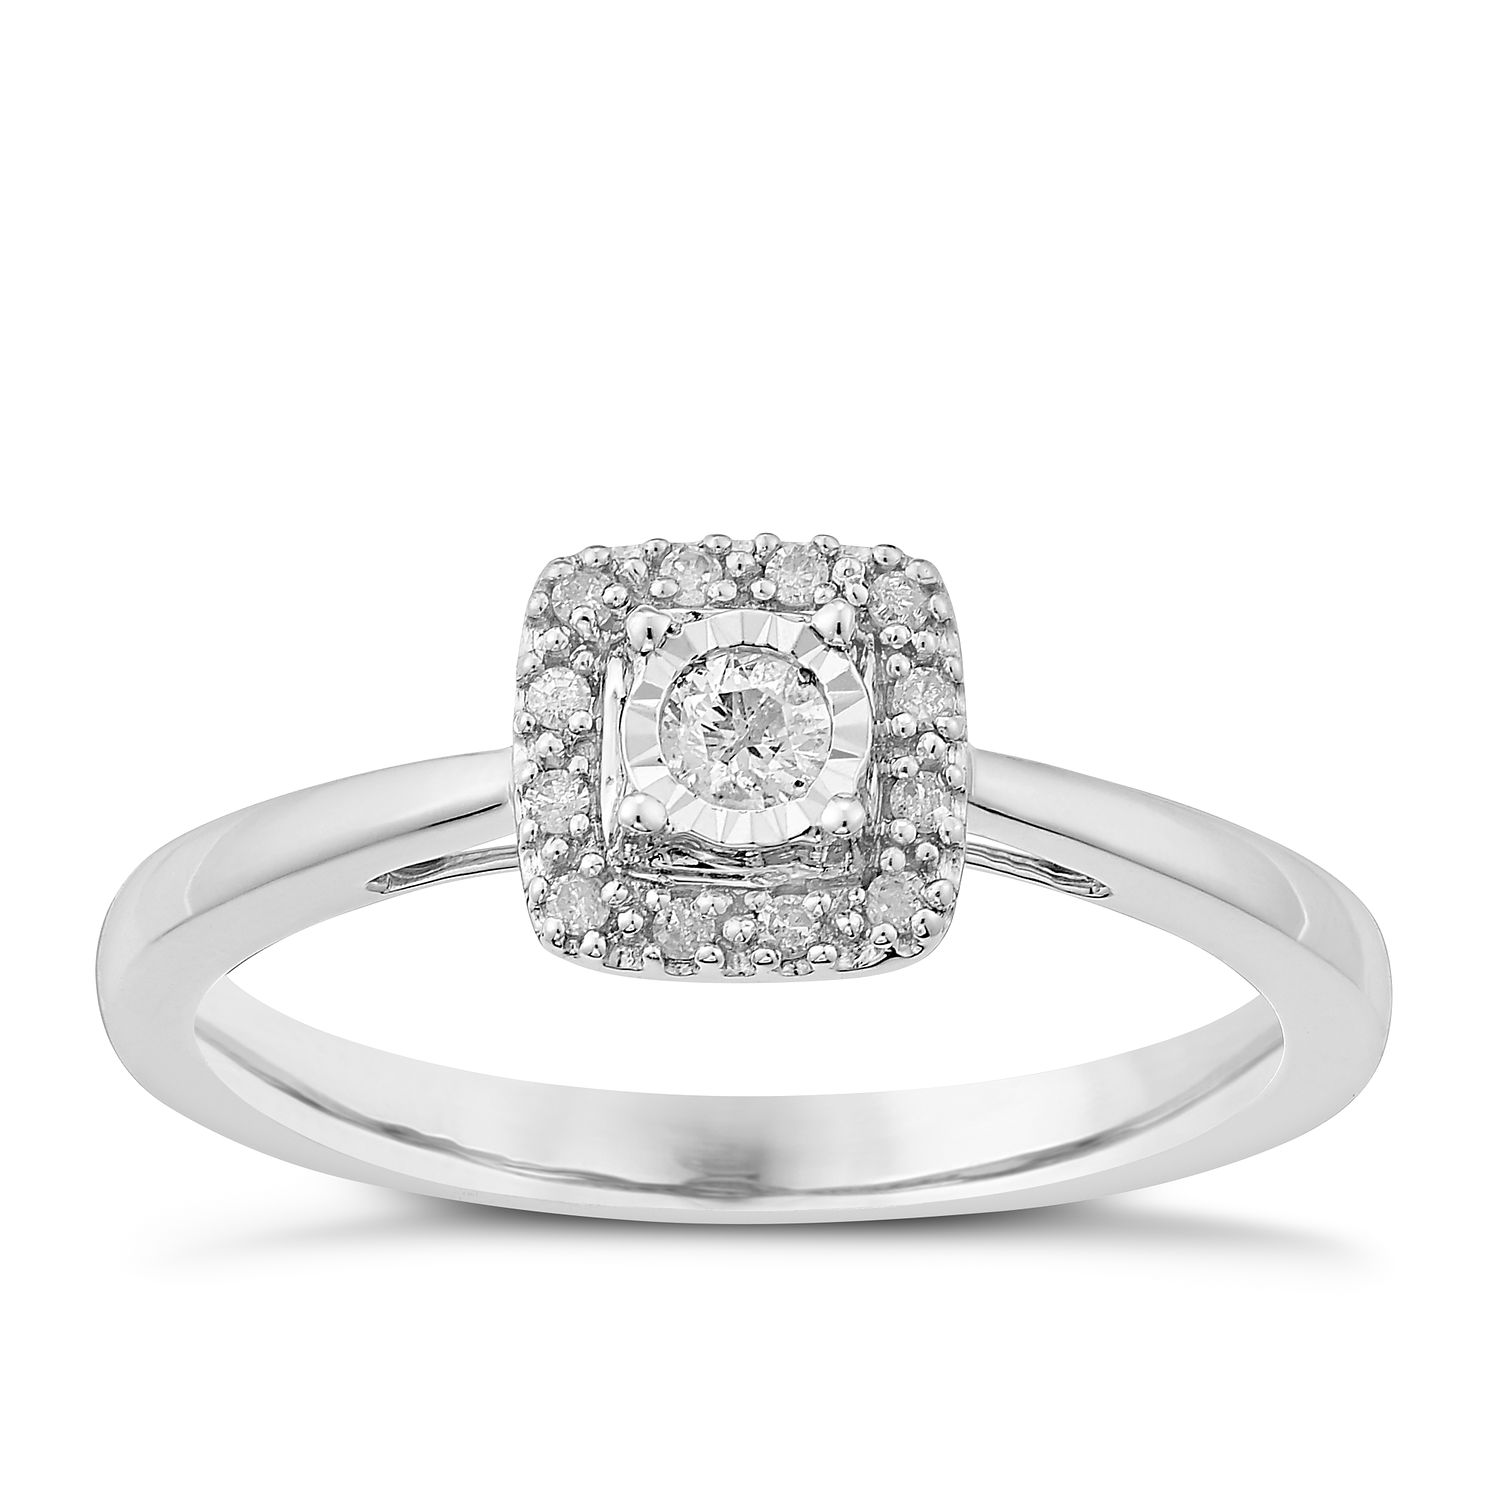 9ct White Gold Diamond Illusion Solitaire Ring - Product number 3817636